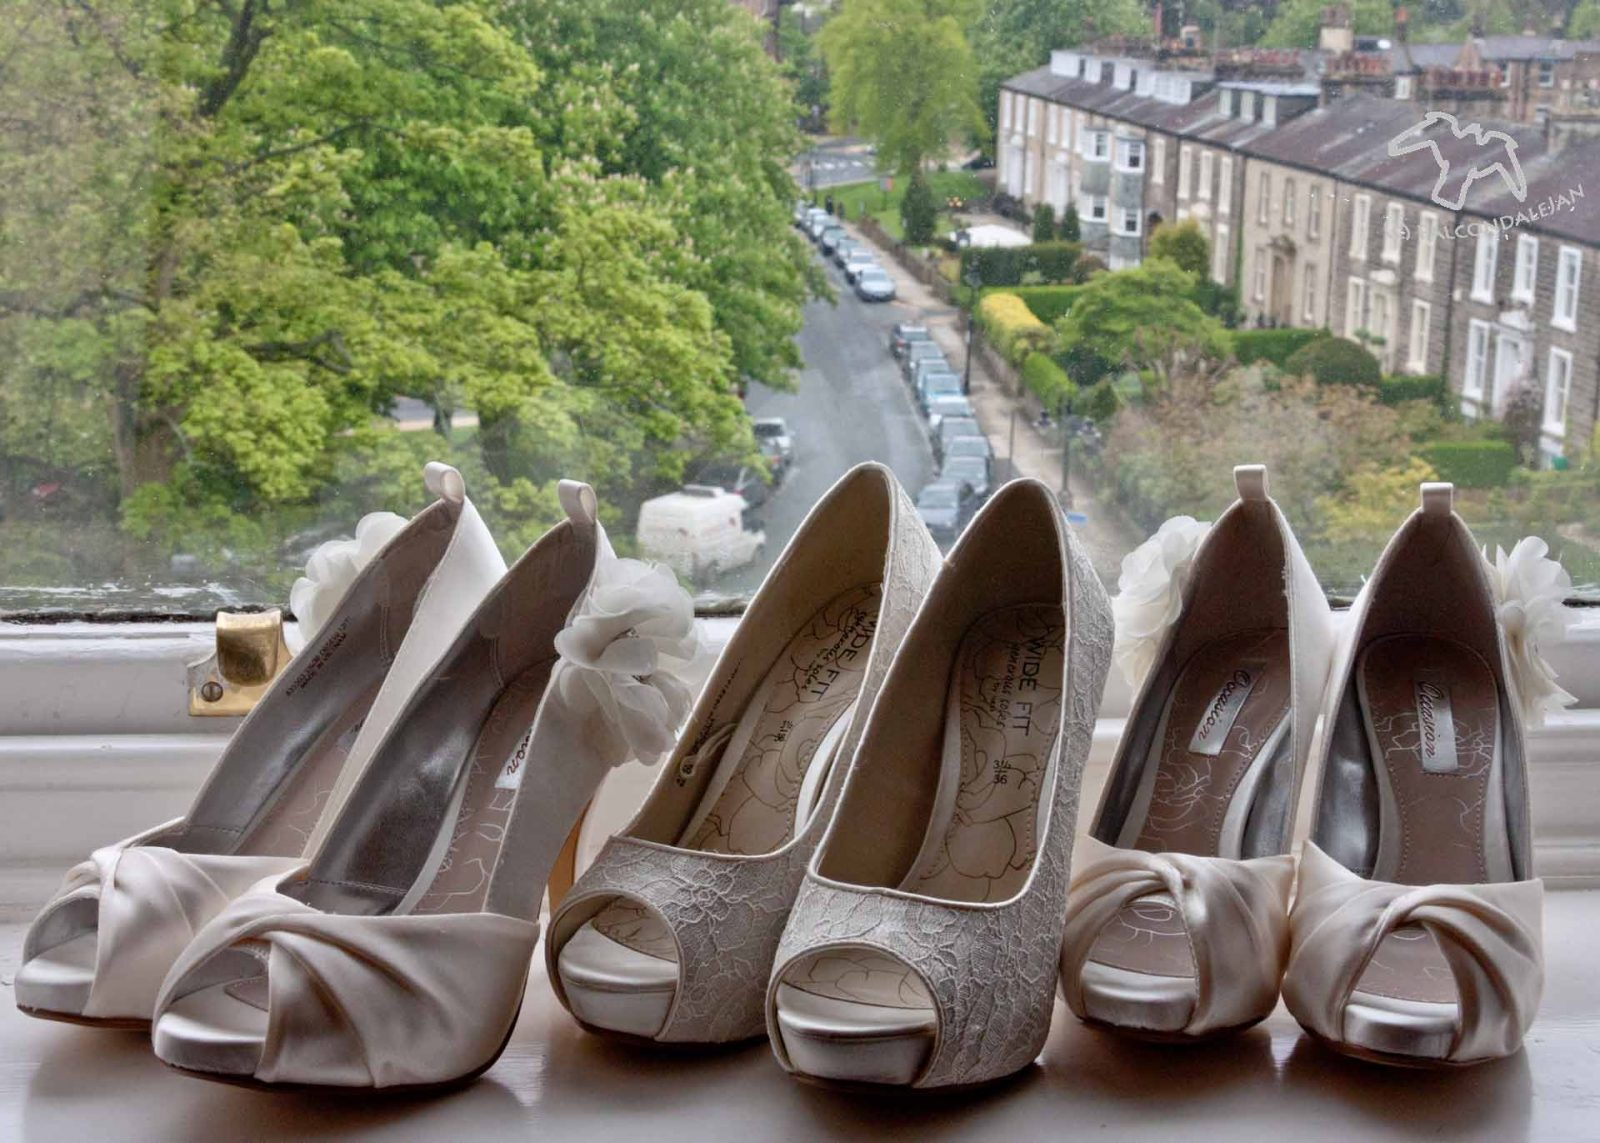 Photographing Weddings as a Second Shooter - How it Worked for Me on Falcondale Life blog. Bride and bridesmaid shoes on a windowsill. The second shooter at weddings helps the main photographer by getting extra photos. It's a less pressured, more flexible role, finding alternative shots.